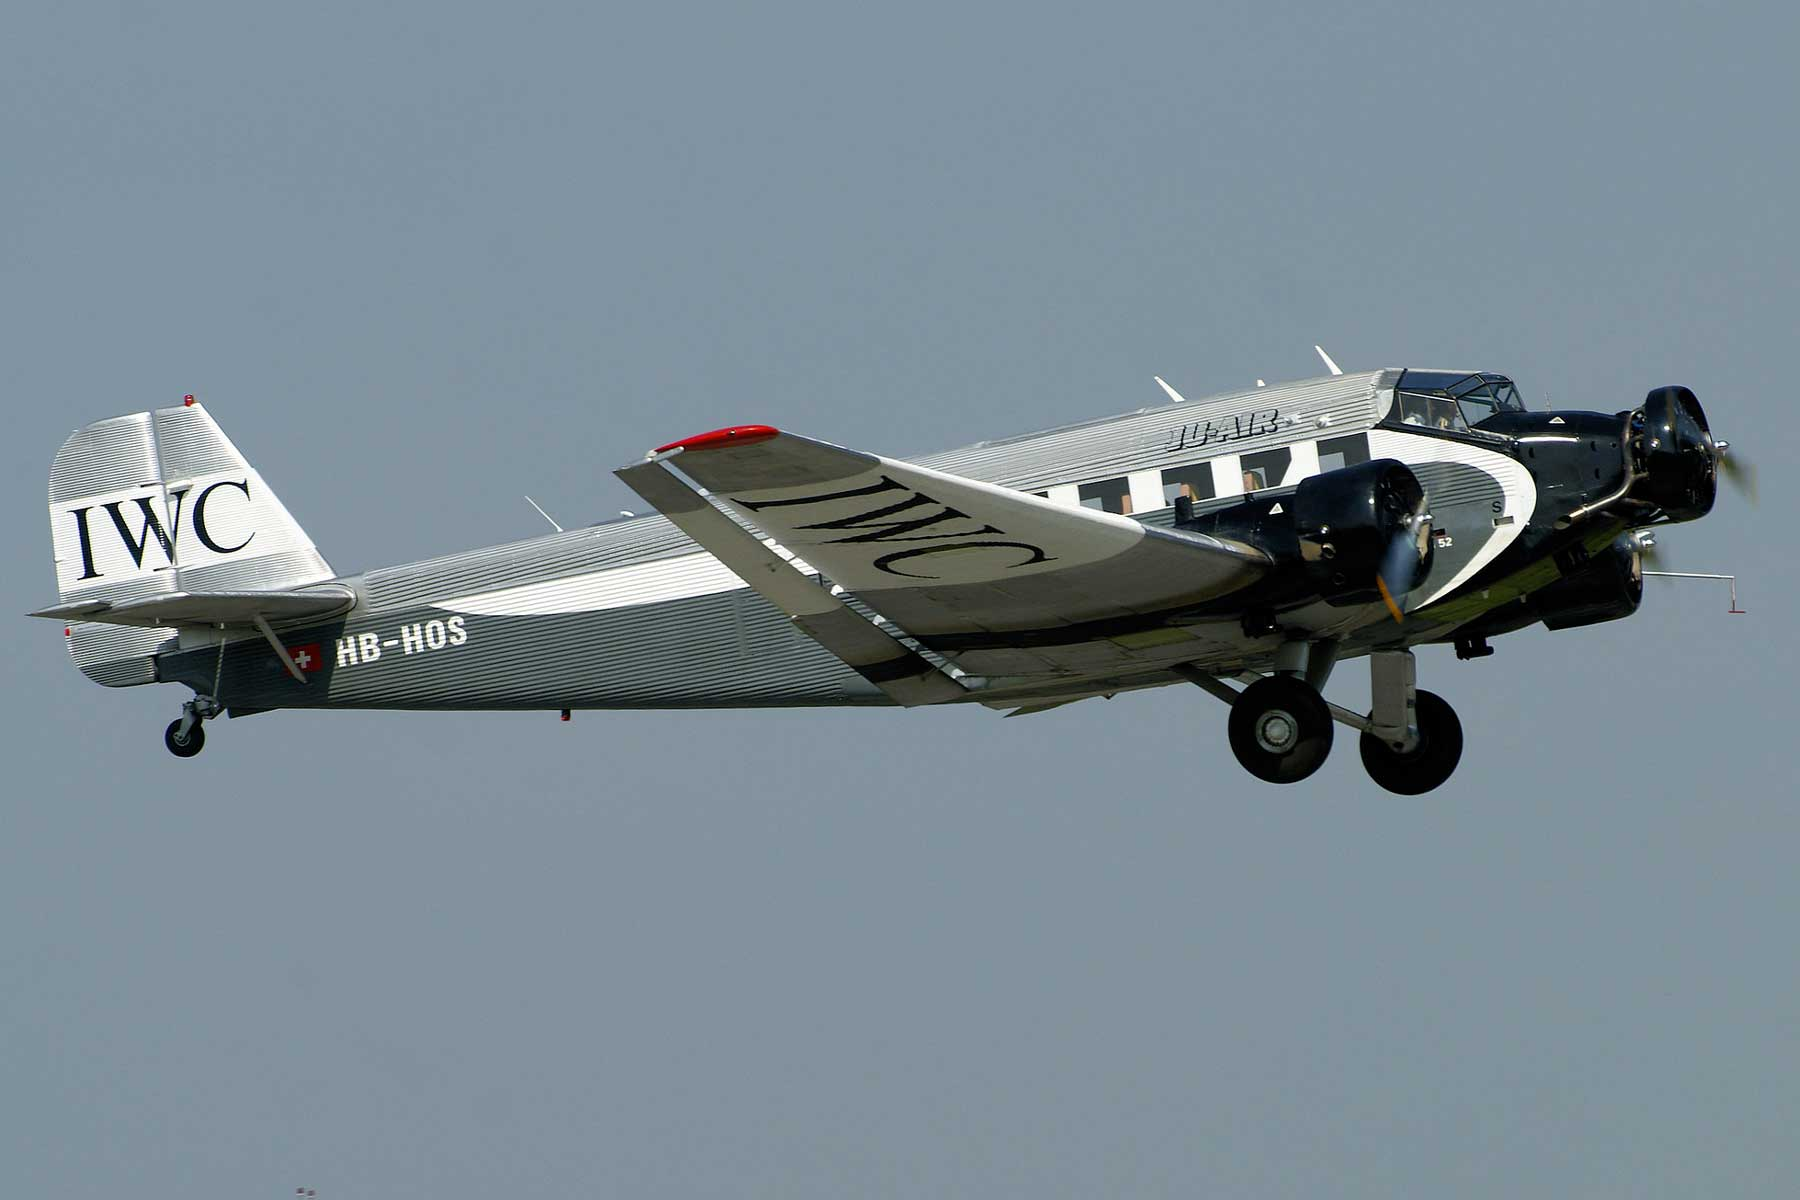 Ju-52 HB-HOS in 2011 (Photo LFSB Plane Pictures (CC BY-NC-ND-2.0))